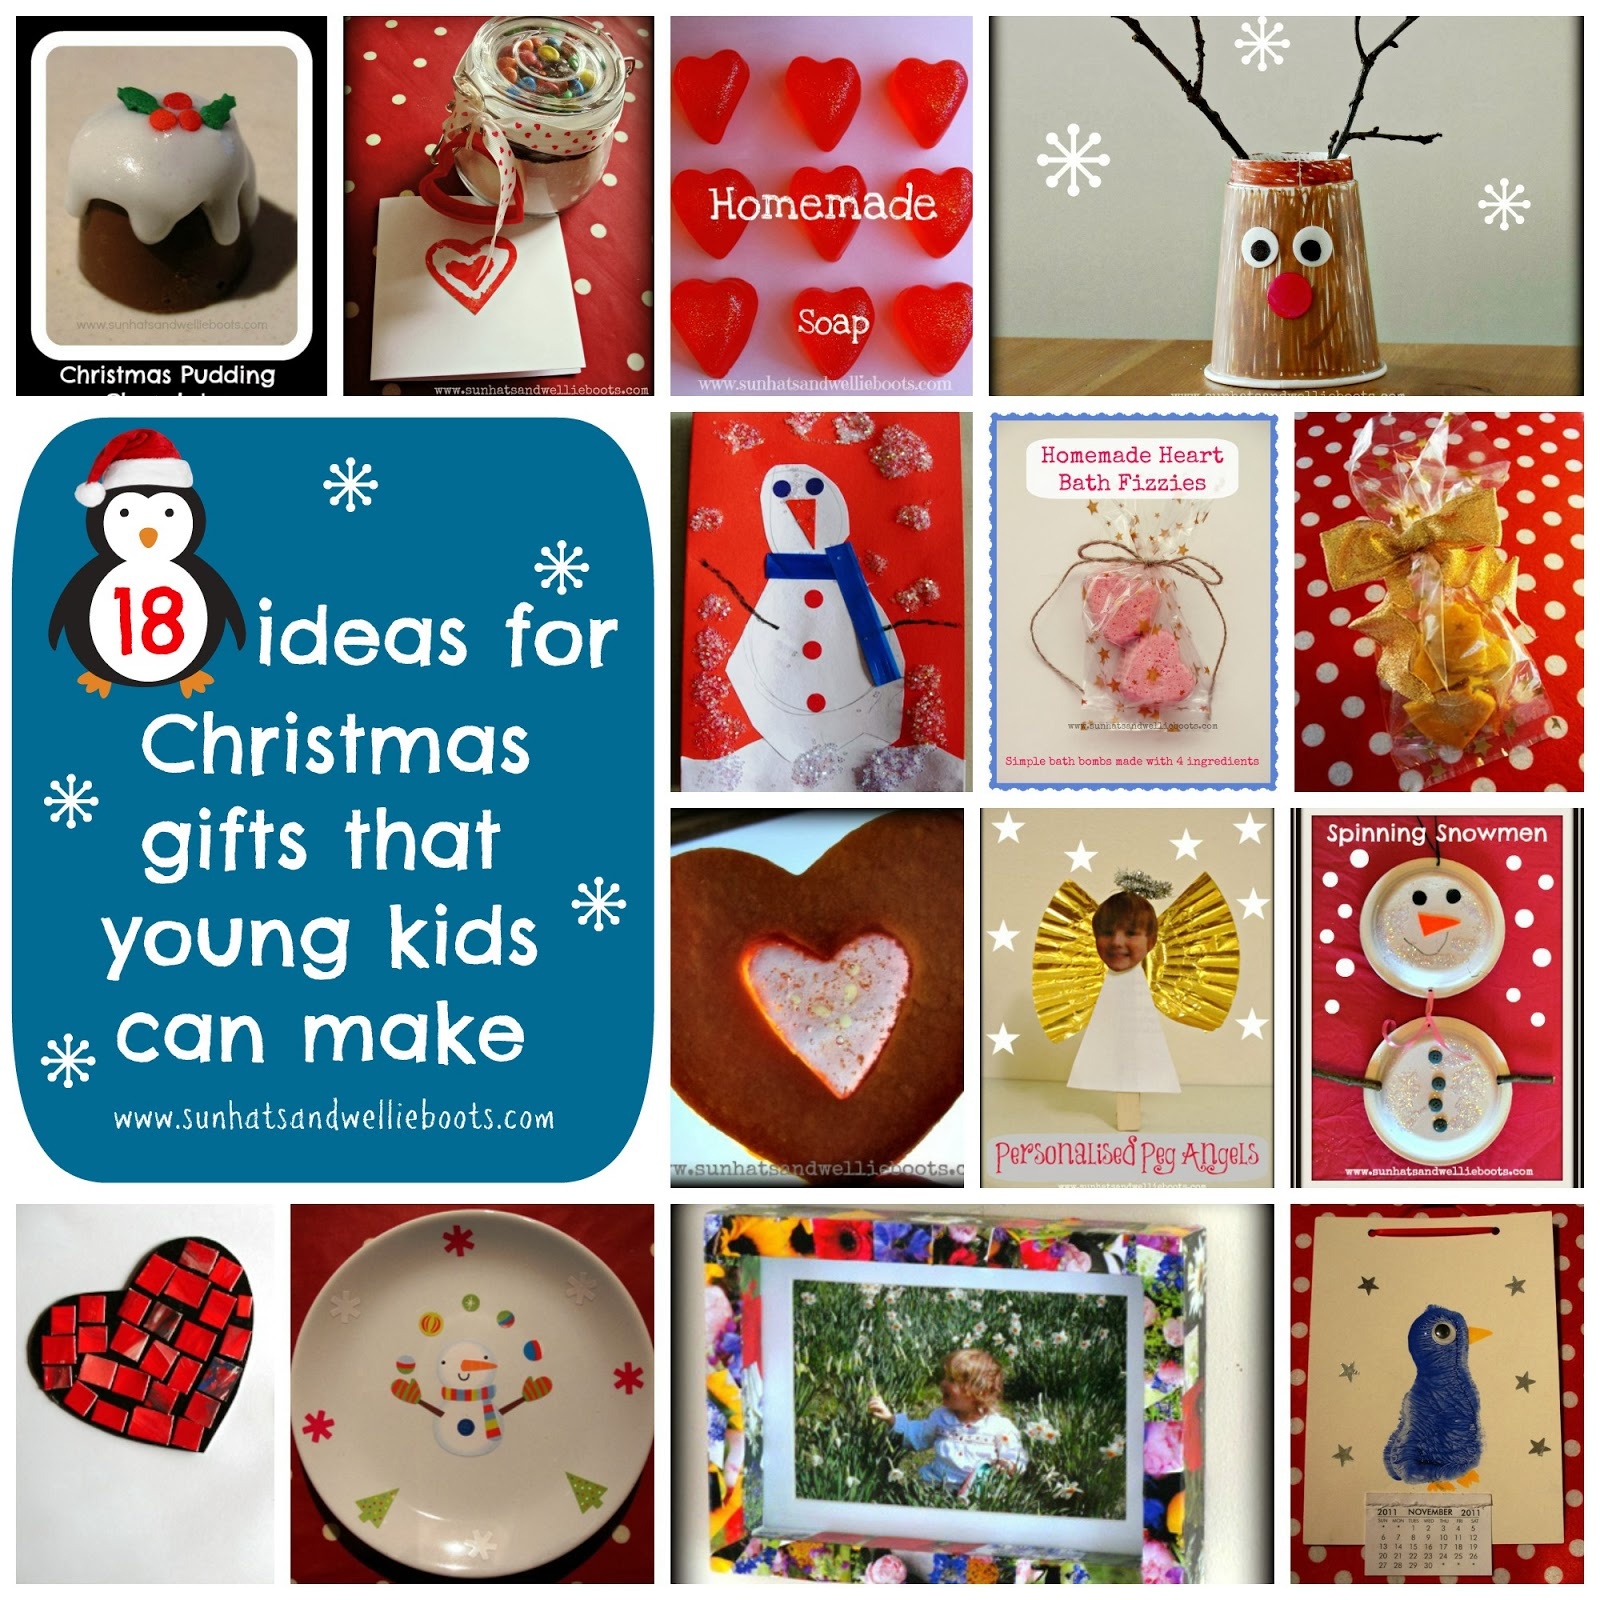 Christmas Homemade Gifts Sun Hats Wellie Boots 18 Homemade Christmas Gifts That Young